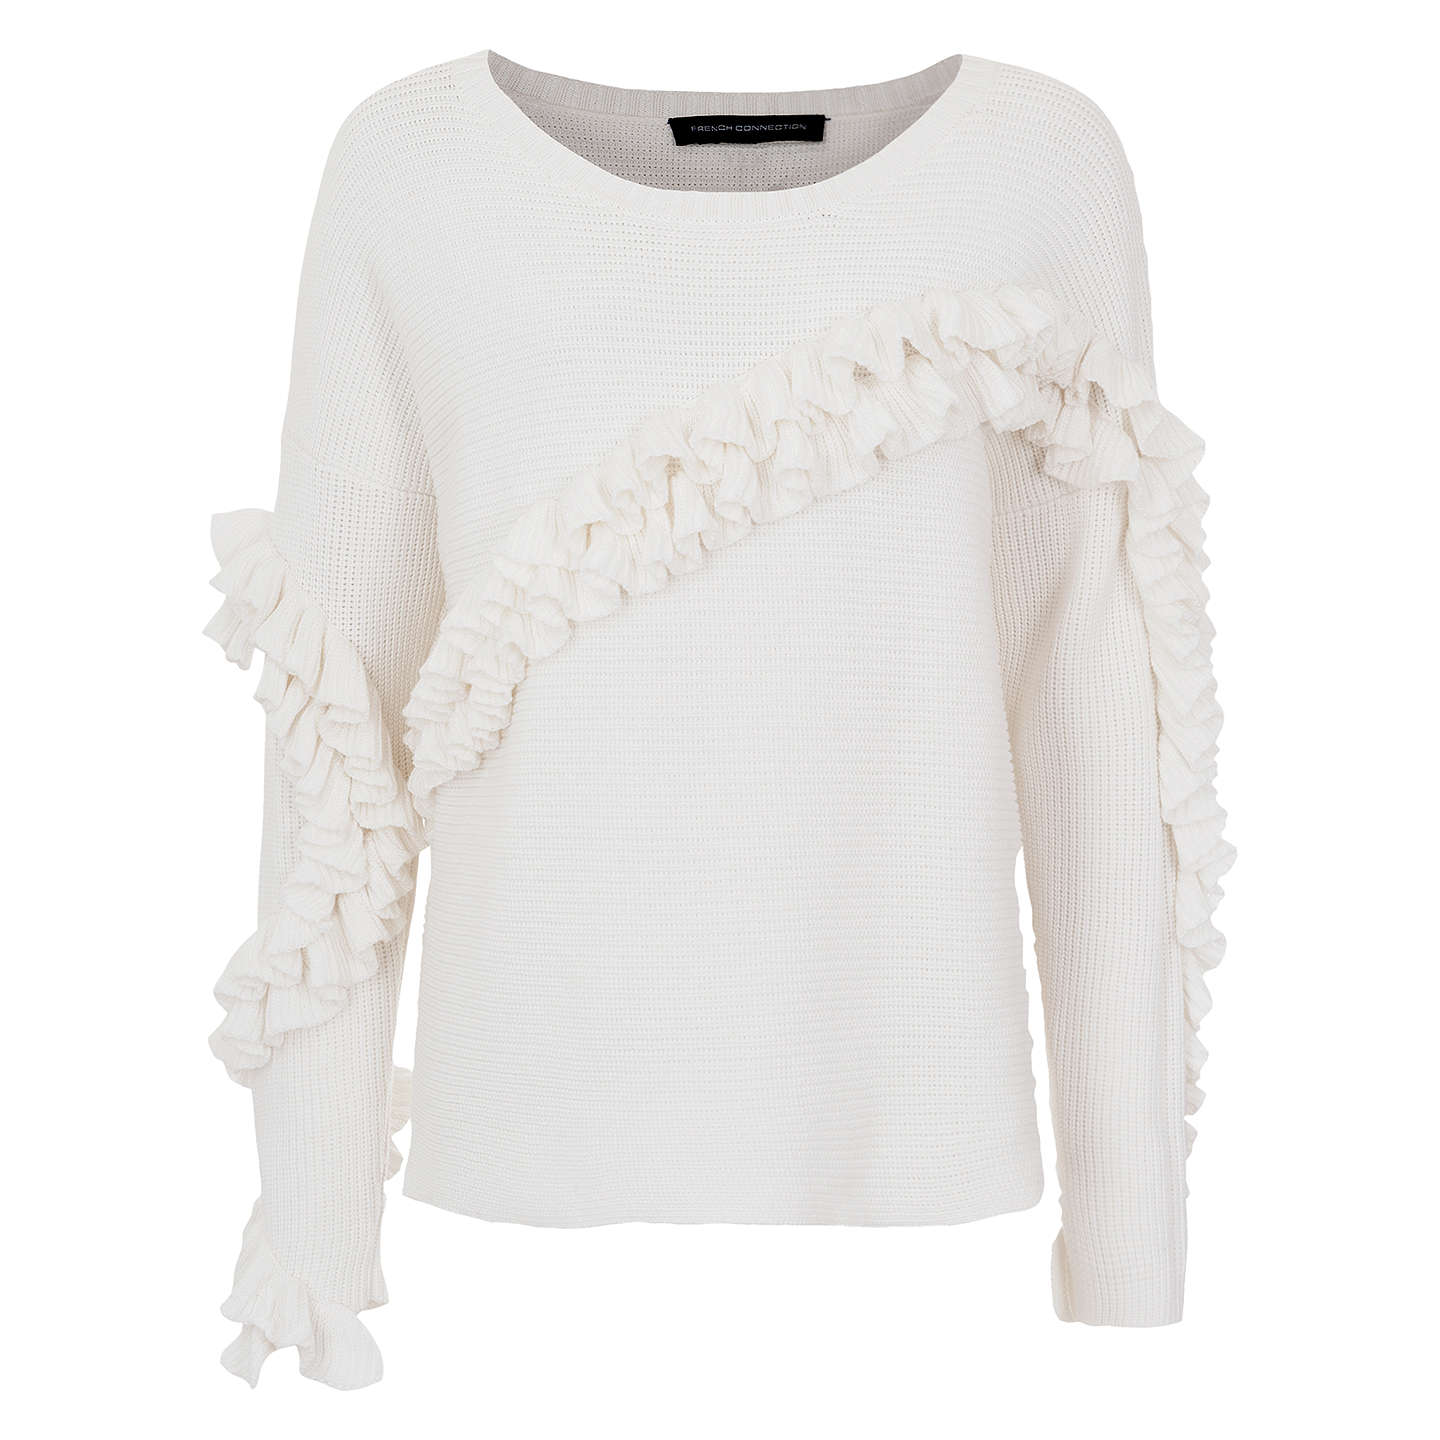 BuyFrench Connection Ruth Frill Cotton Jumper, Summer White, XS Online at johnlewis.com